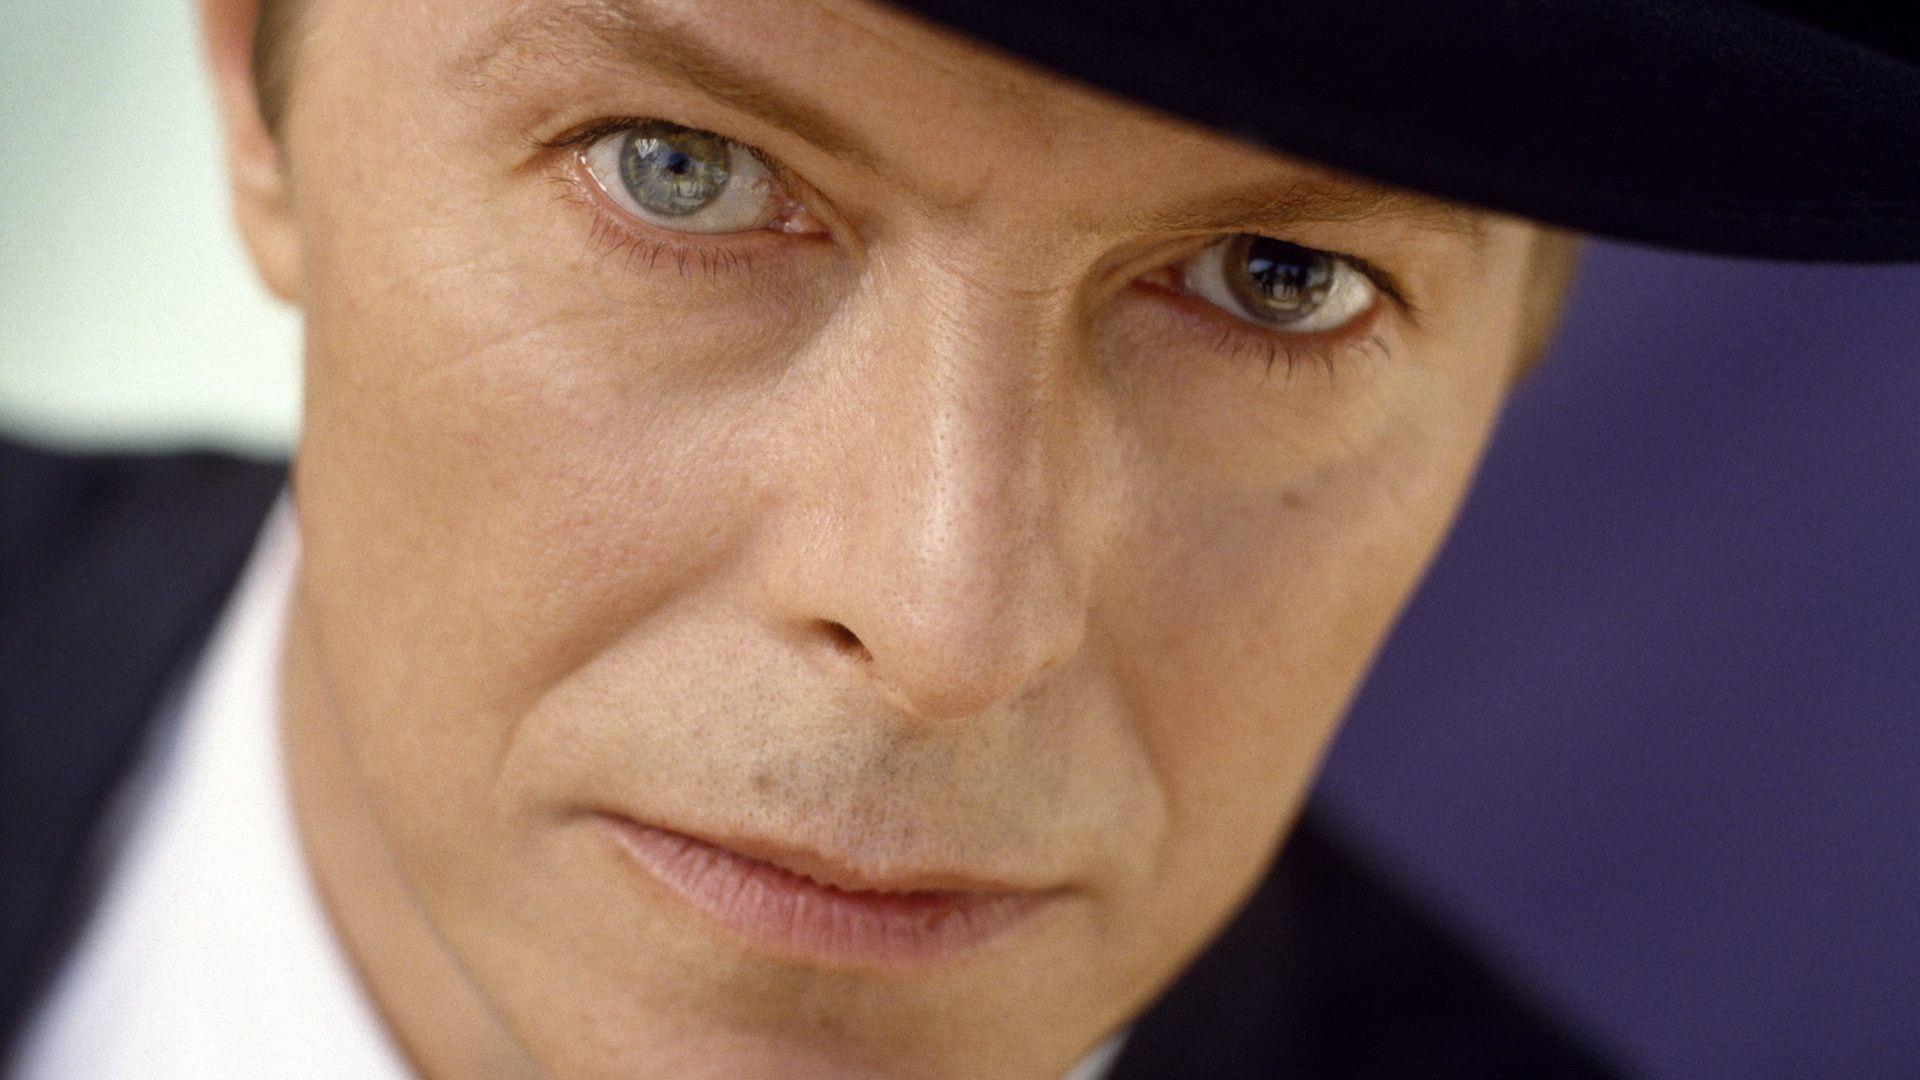 Direct Link David Bowie Wallpapers 1920x1080